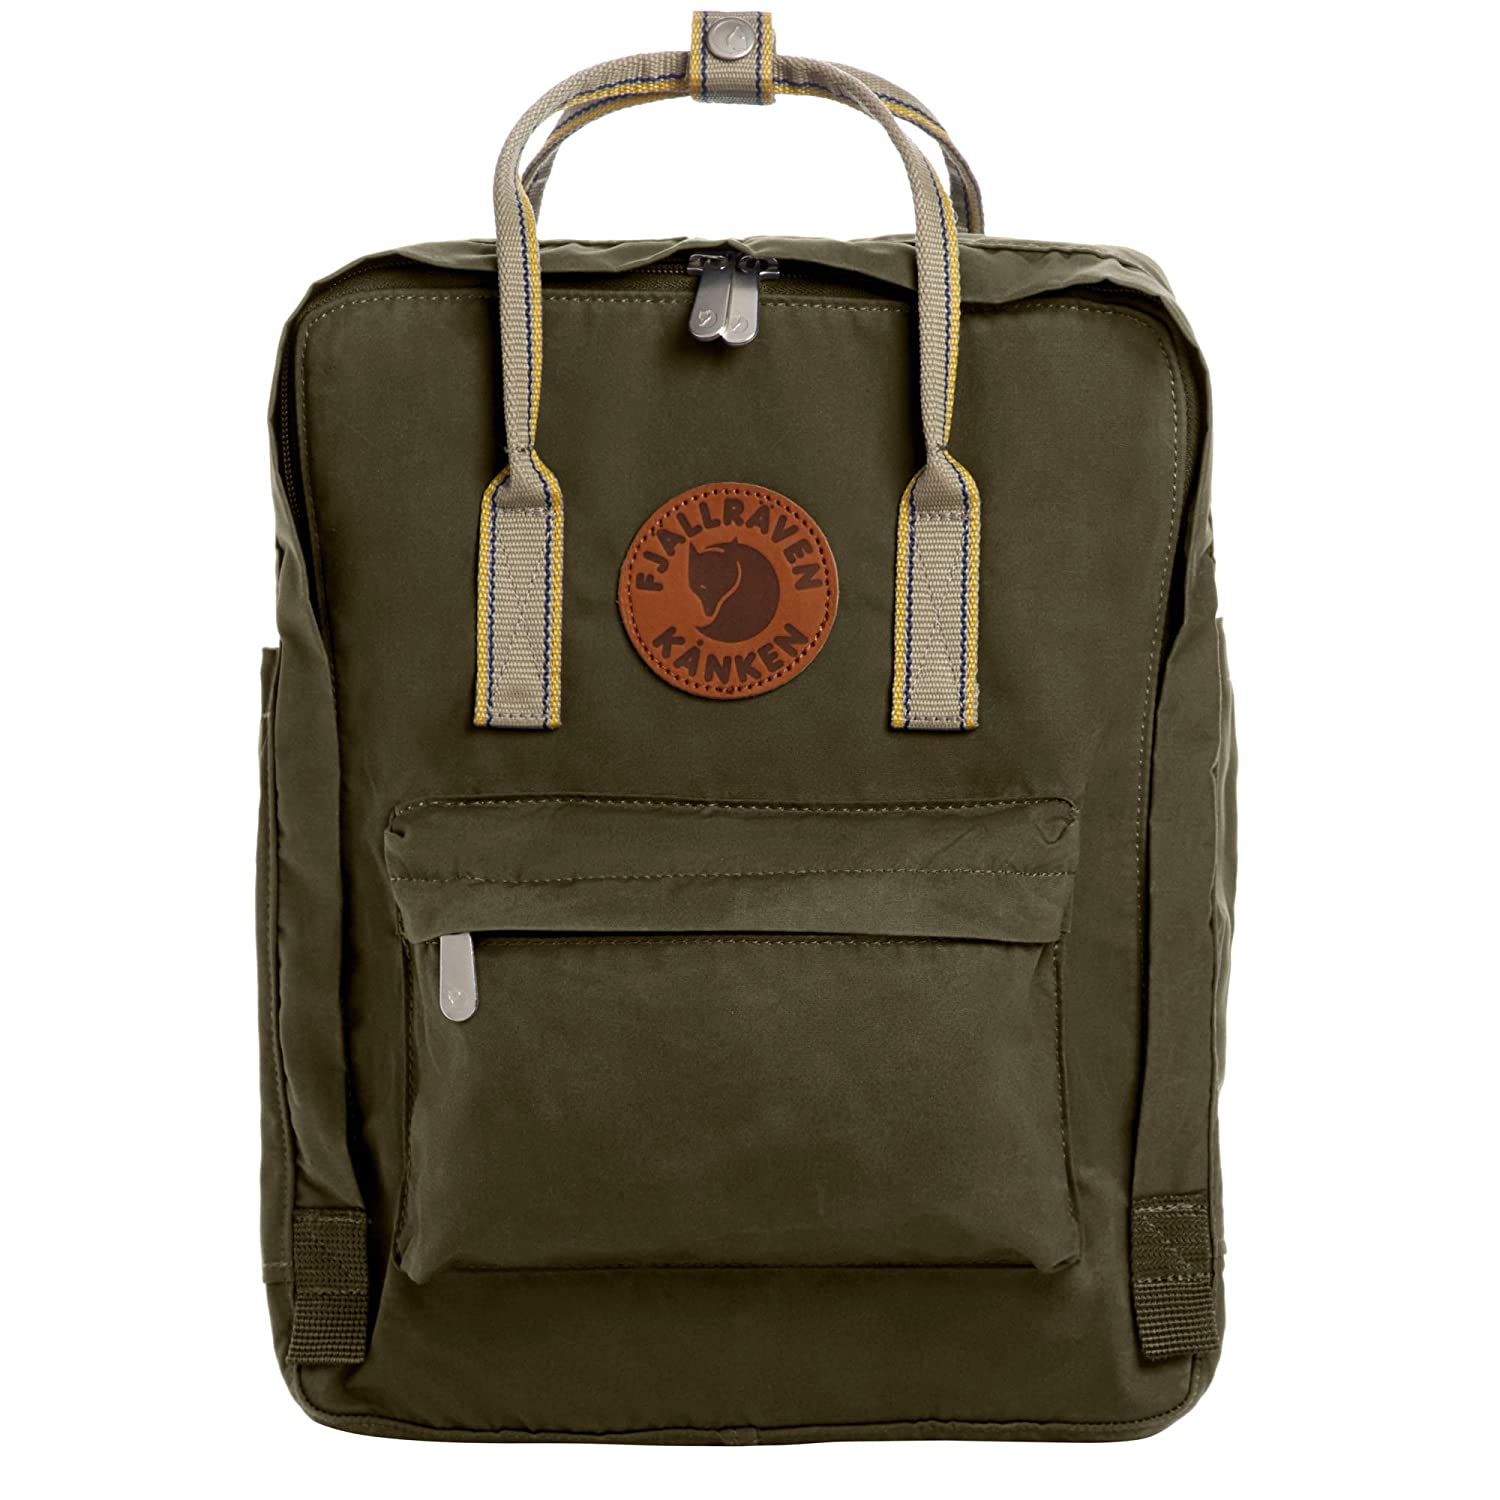 Fjallraven - Kanken Greenland Backpack for Everyday  Deep Forest Greenland Backpack for Everyday Pattern